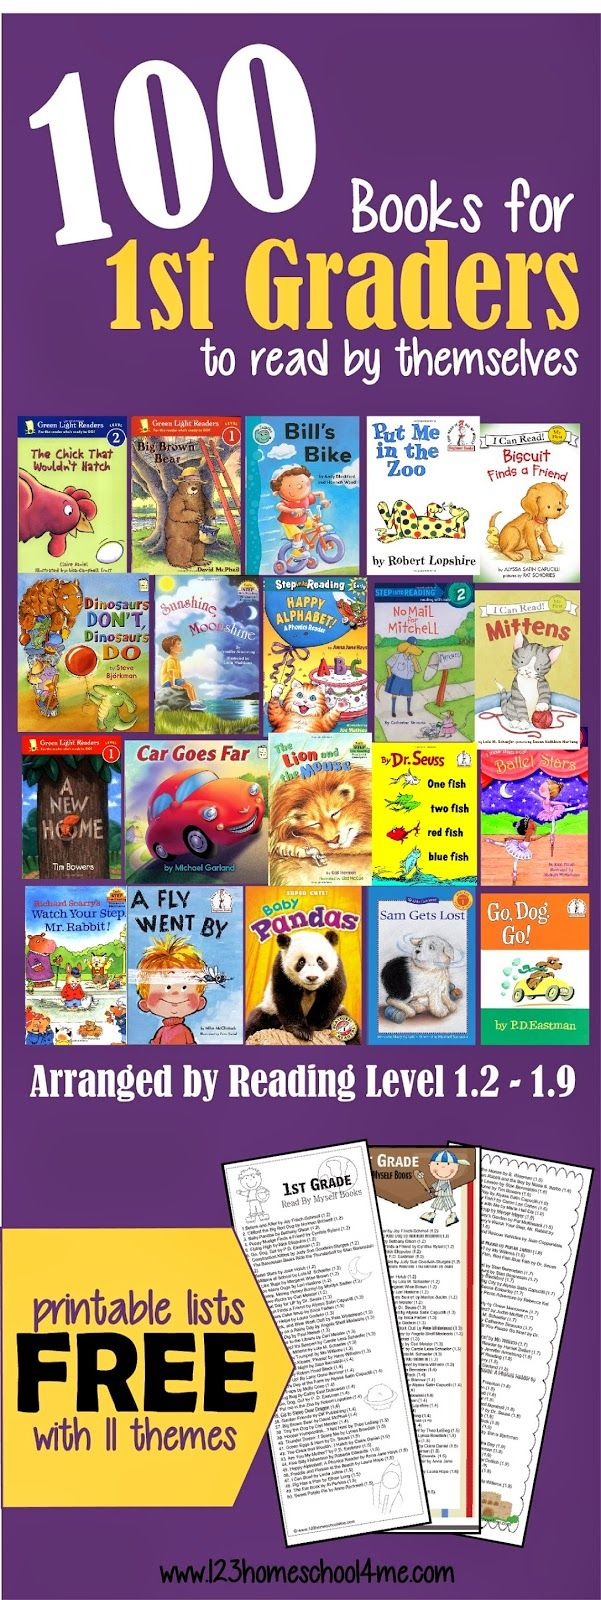 Worksheet Free Online Reading Programs For Kids 1000 ideas about kids reading on pinterest chapter books free 100 to read printable